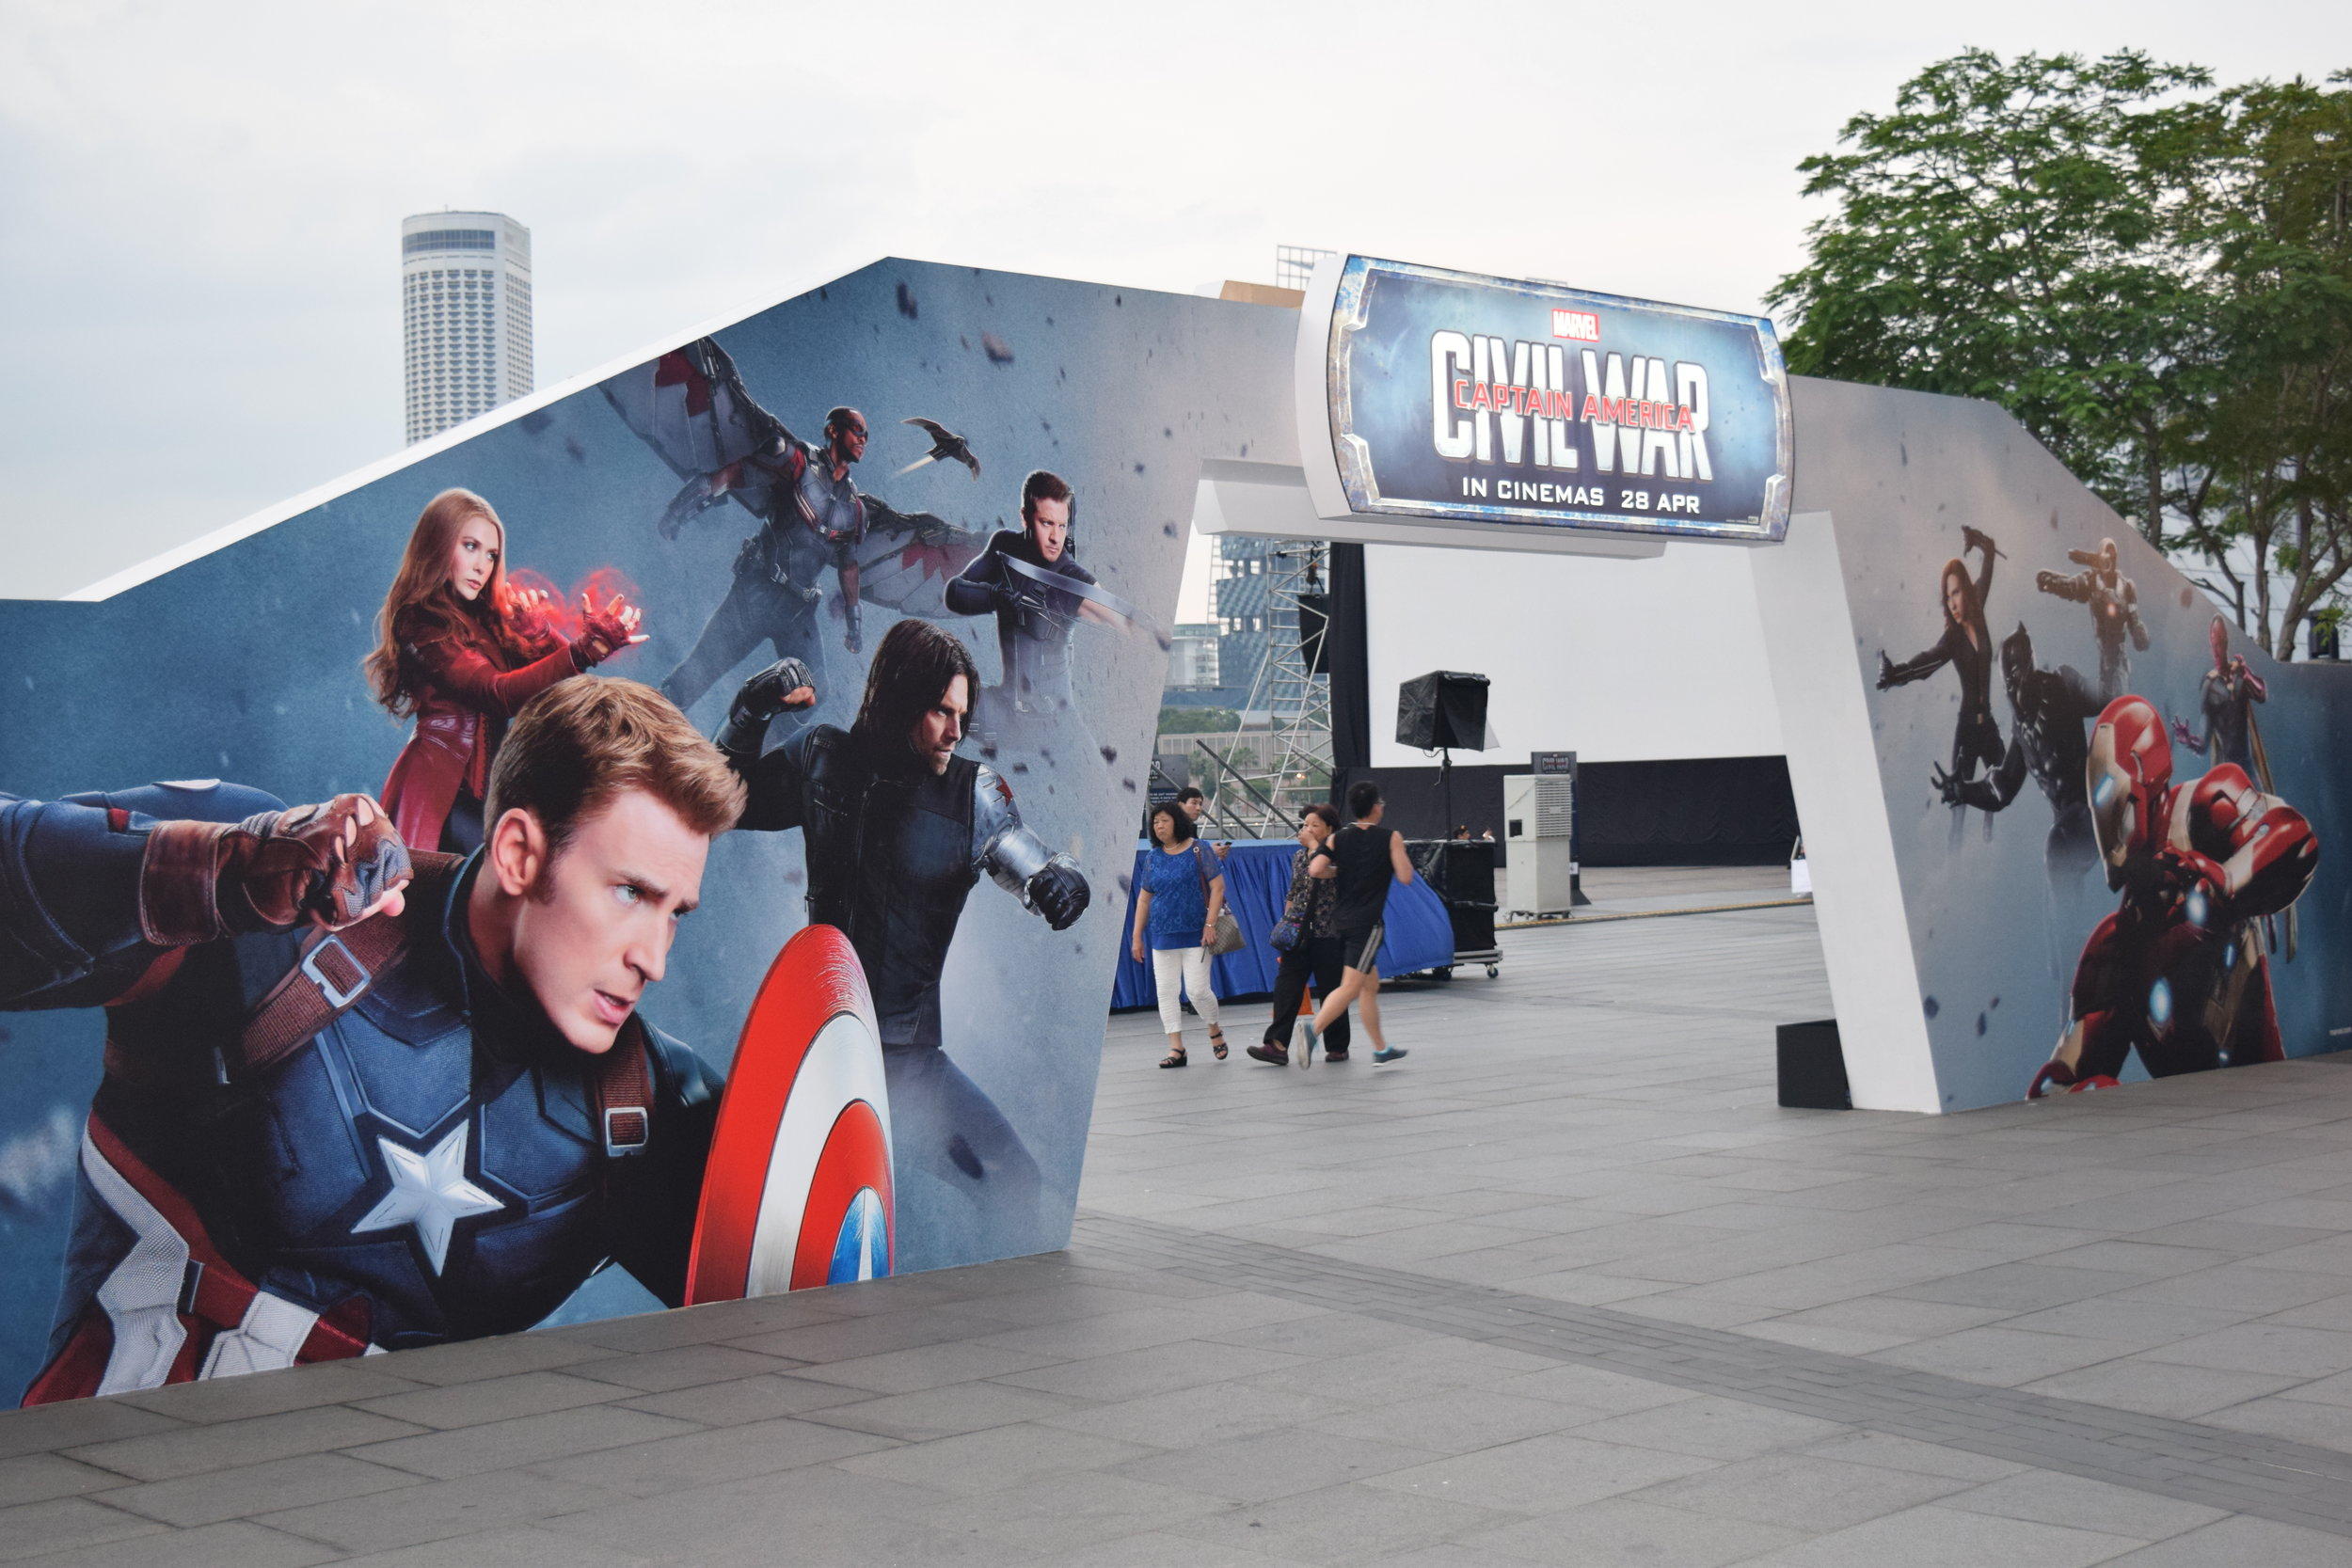 Movie Premiere & Festival - Captain America Festival  Venue: Marina Bay Sands Event Plaza